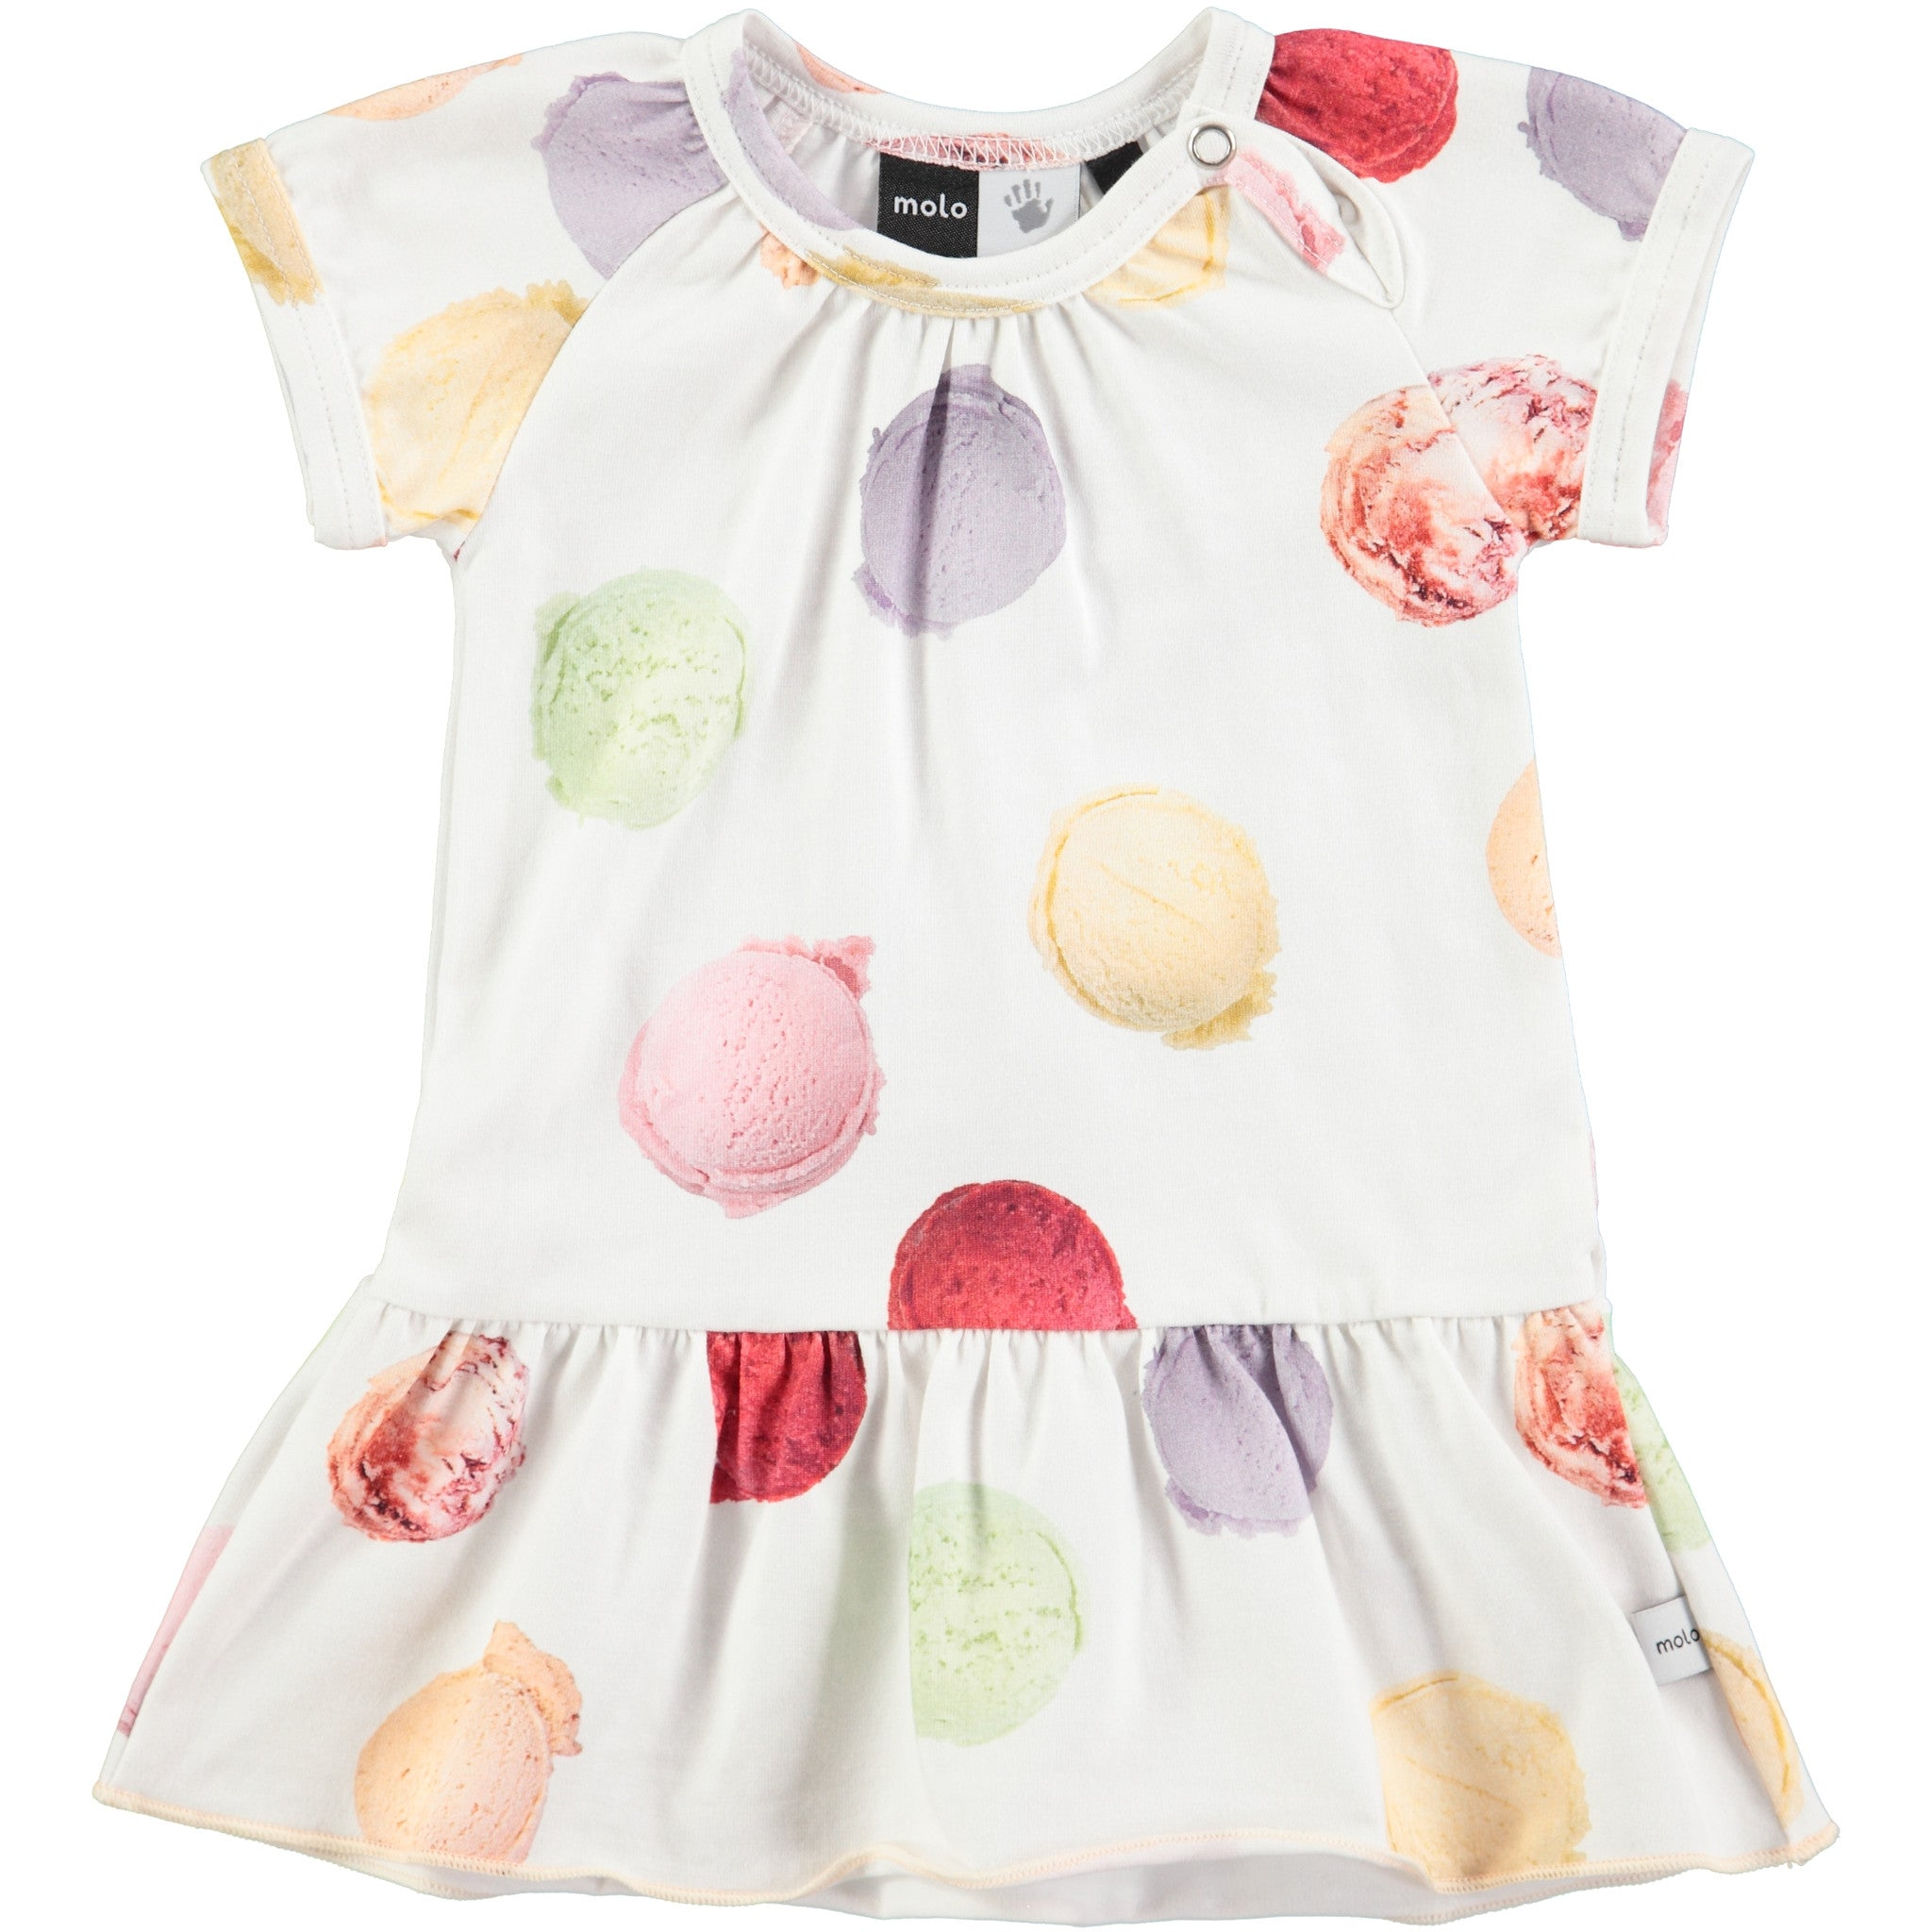 Molo White Scoops Baby Dress - Ladida